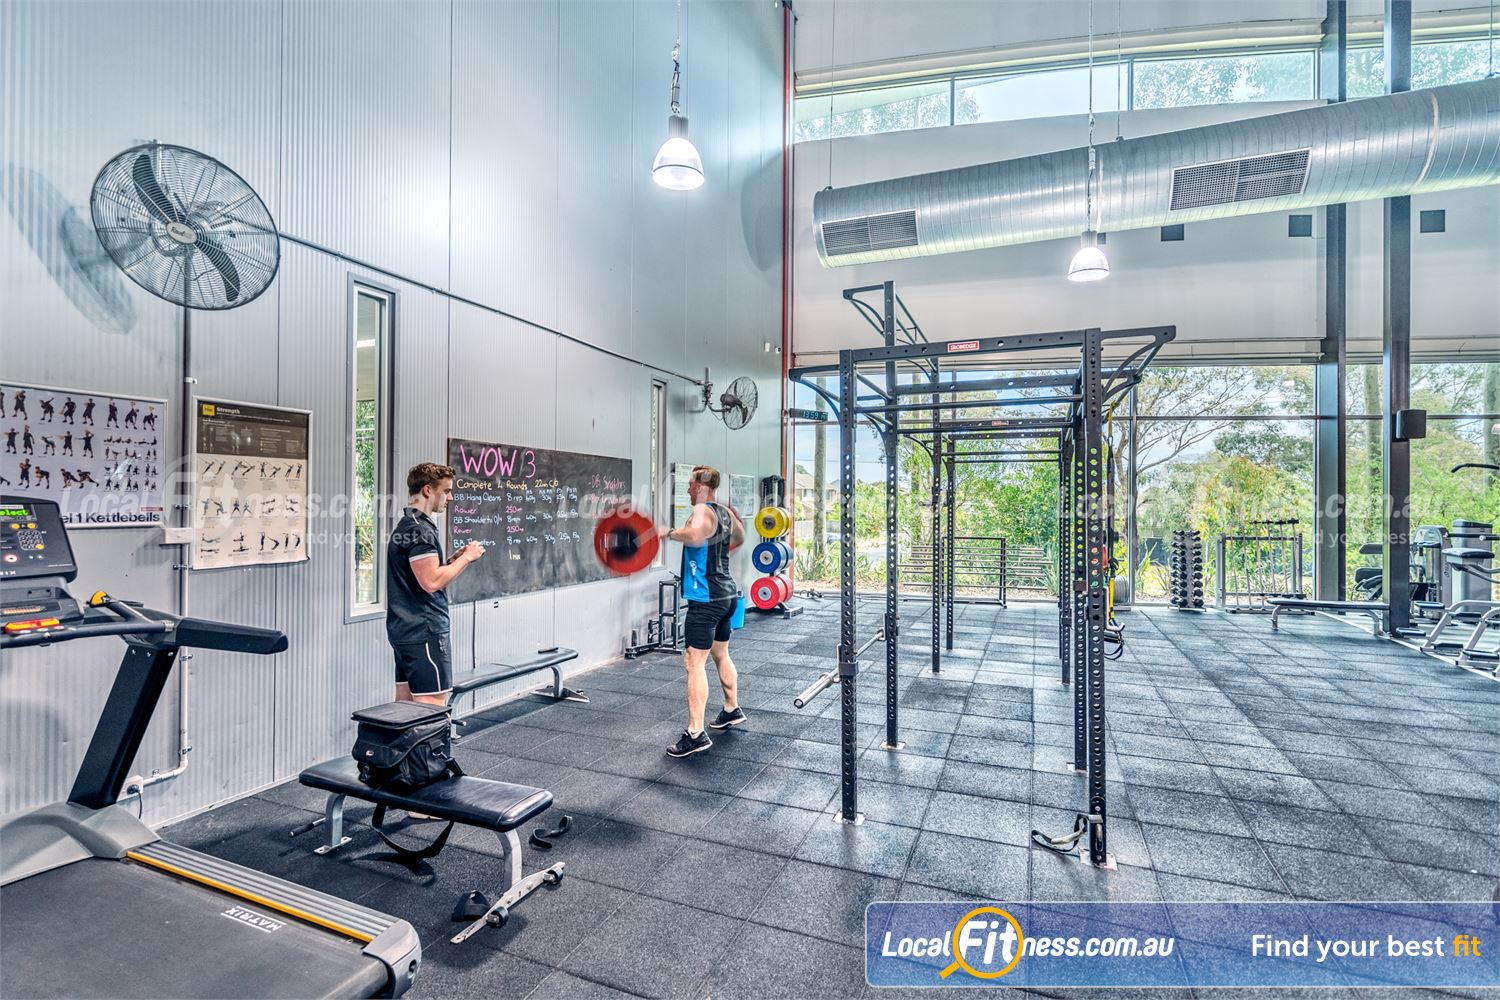 Goodlife Health Clubs Near Baxter The hi-performance strength cage in our functional training area.